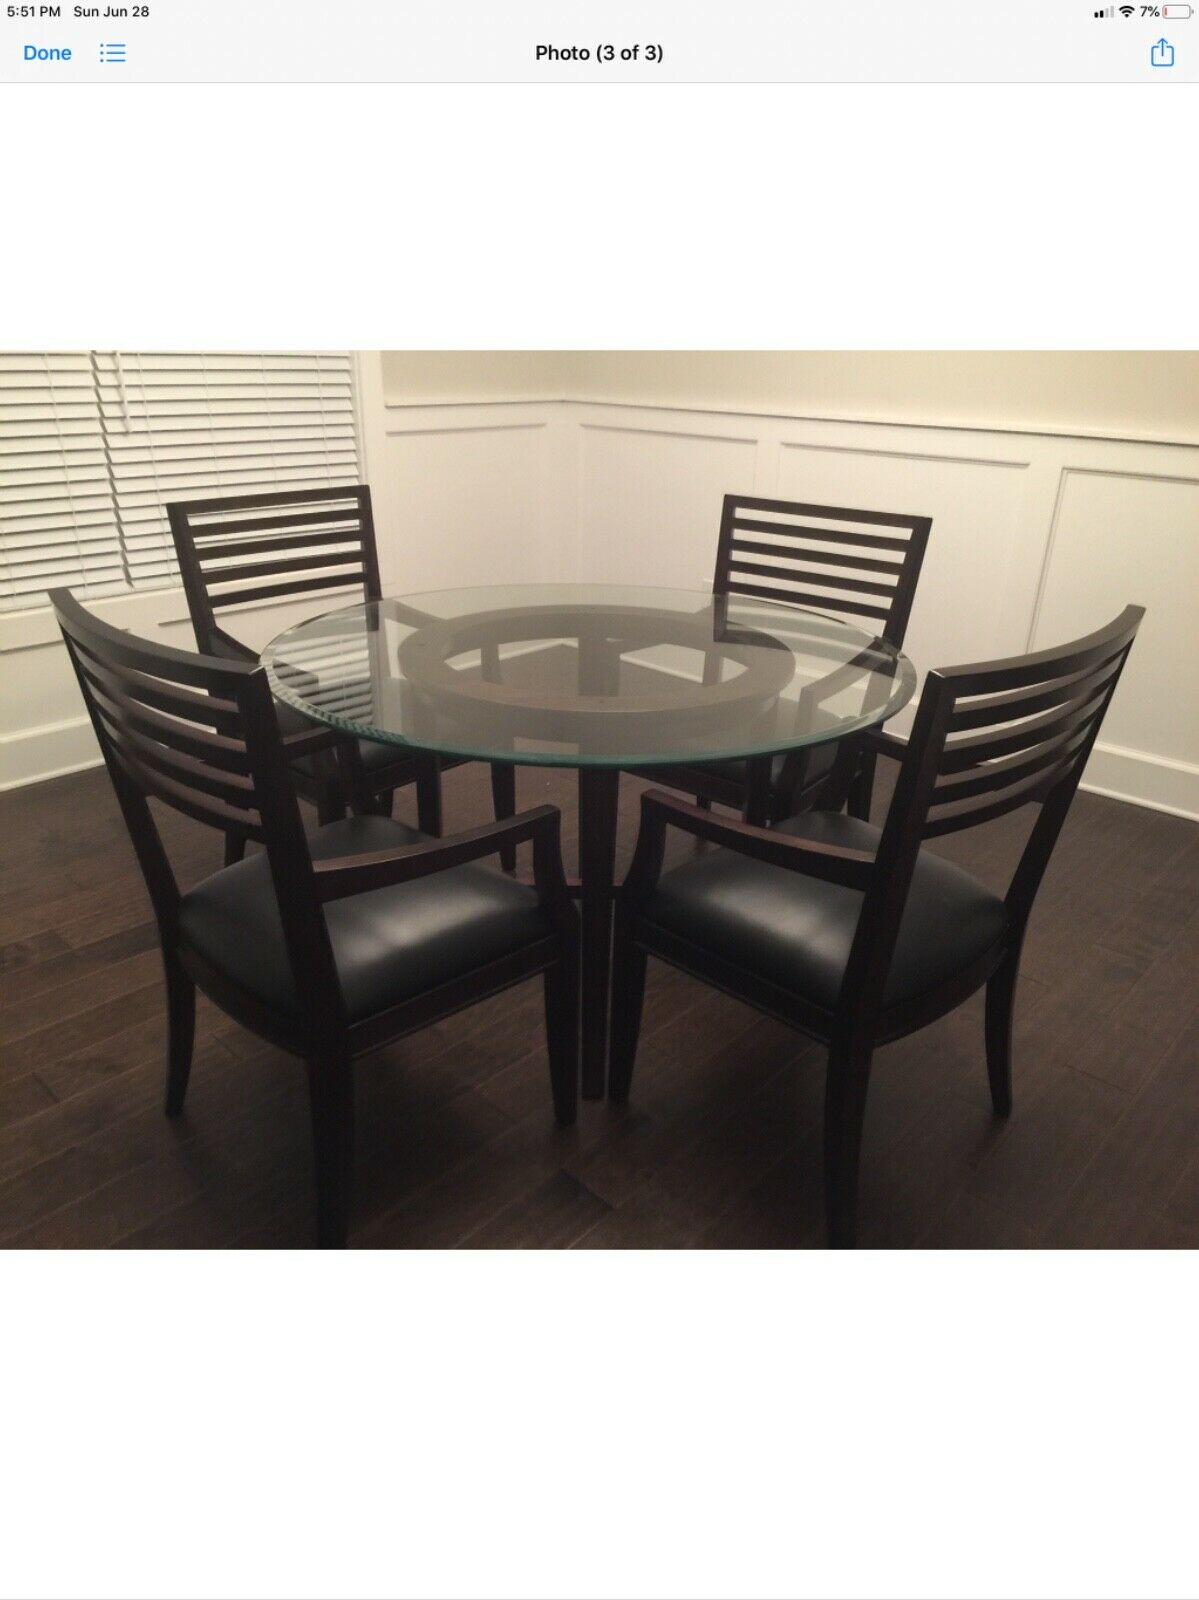 Picture of: Beautiful Dining Set W Round Glass Table Top On Wood Base 4 Matching Chairs For Sale Online